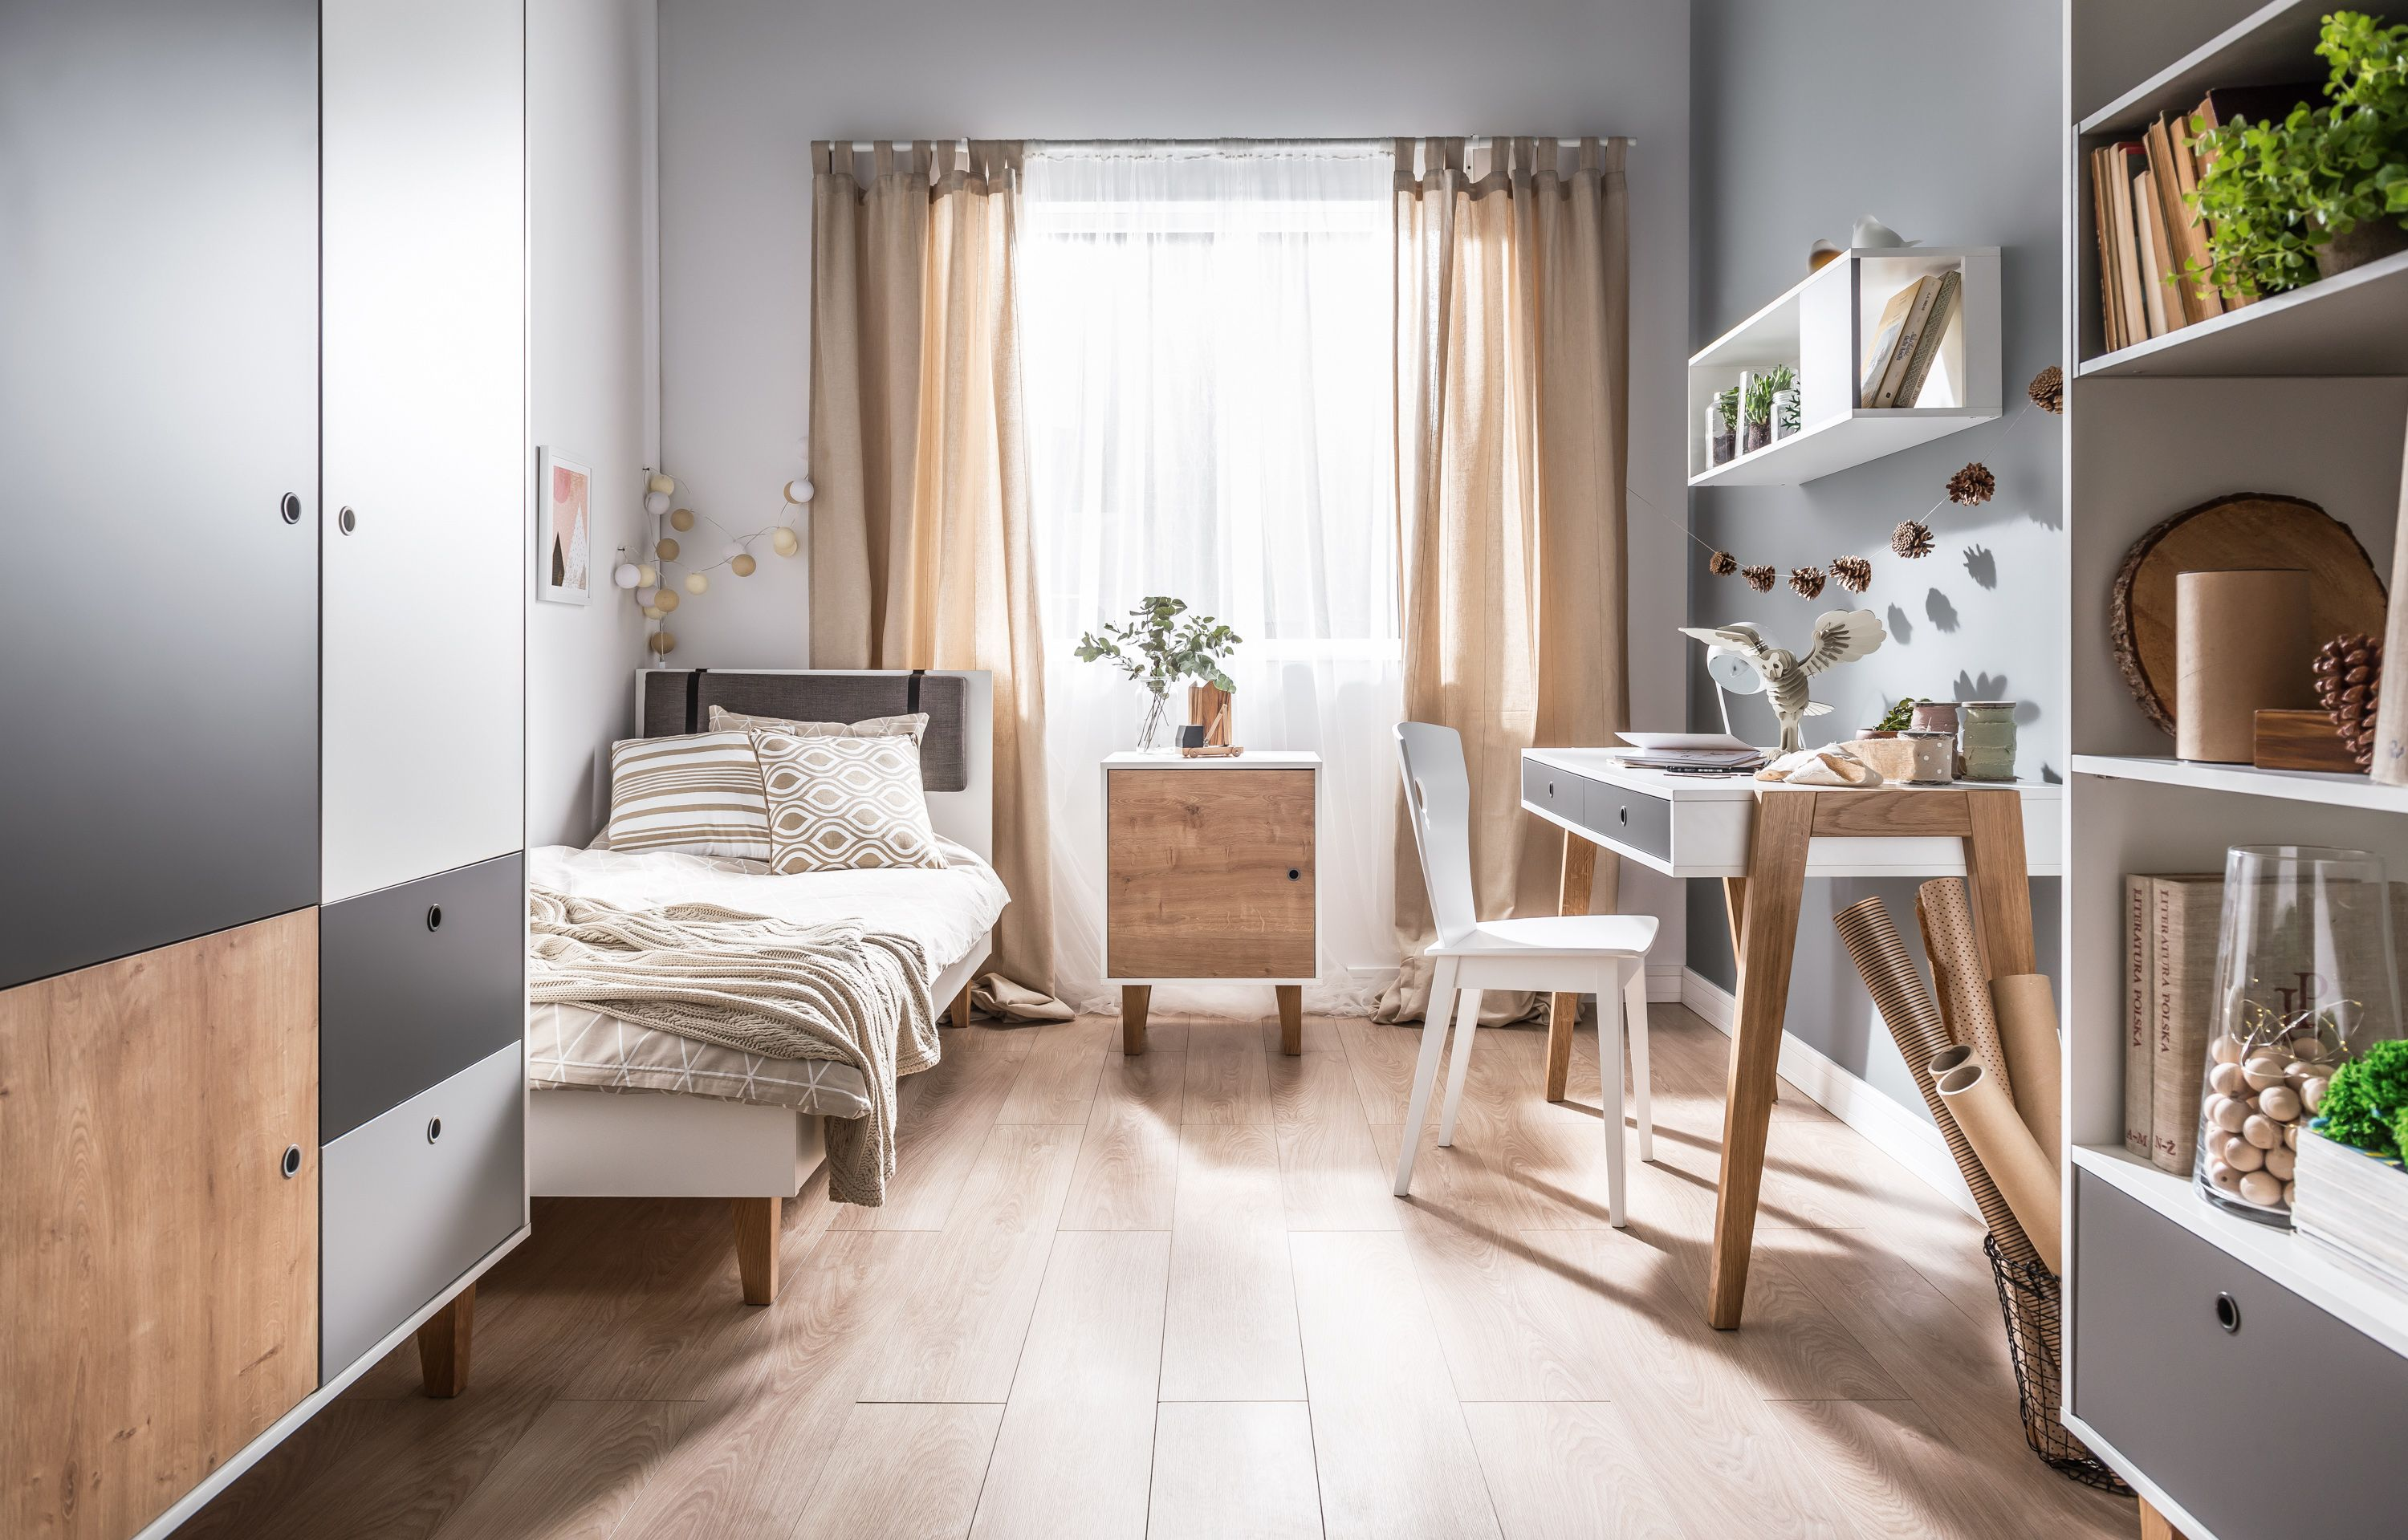 18 Small Bedroom Ideas To Fall In Love With - Small ... on Small Room Decoration  id=31981